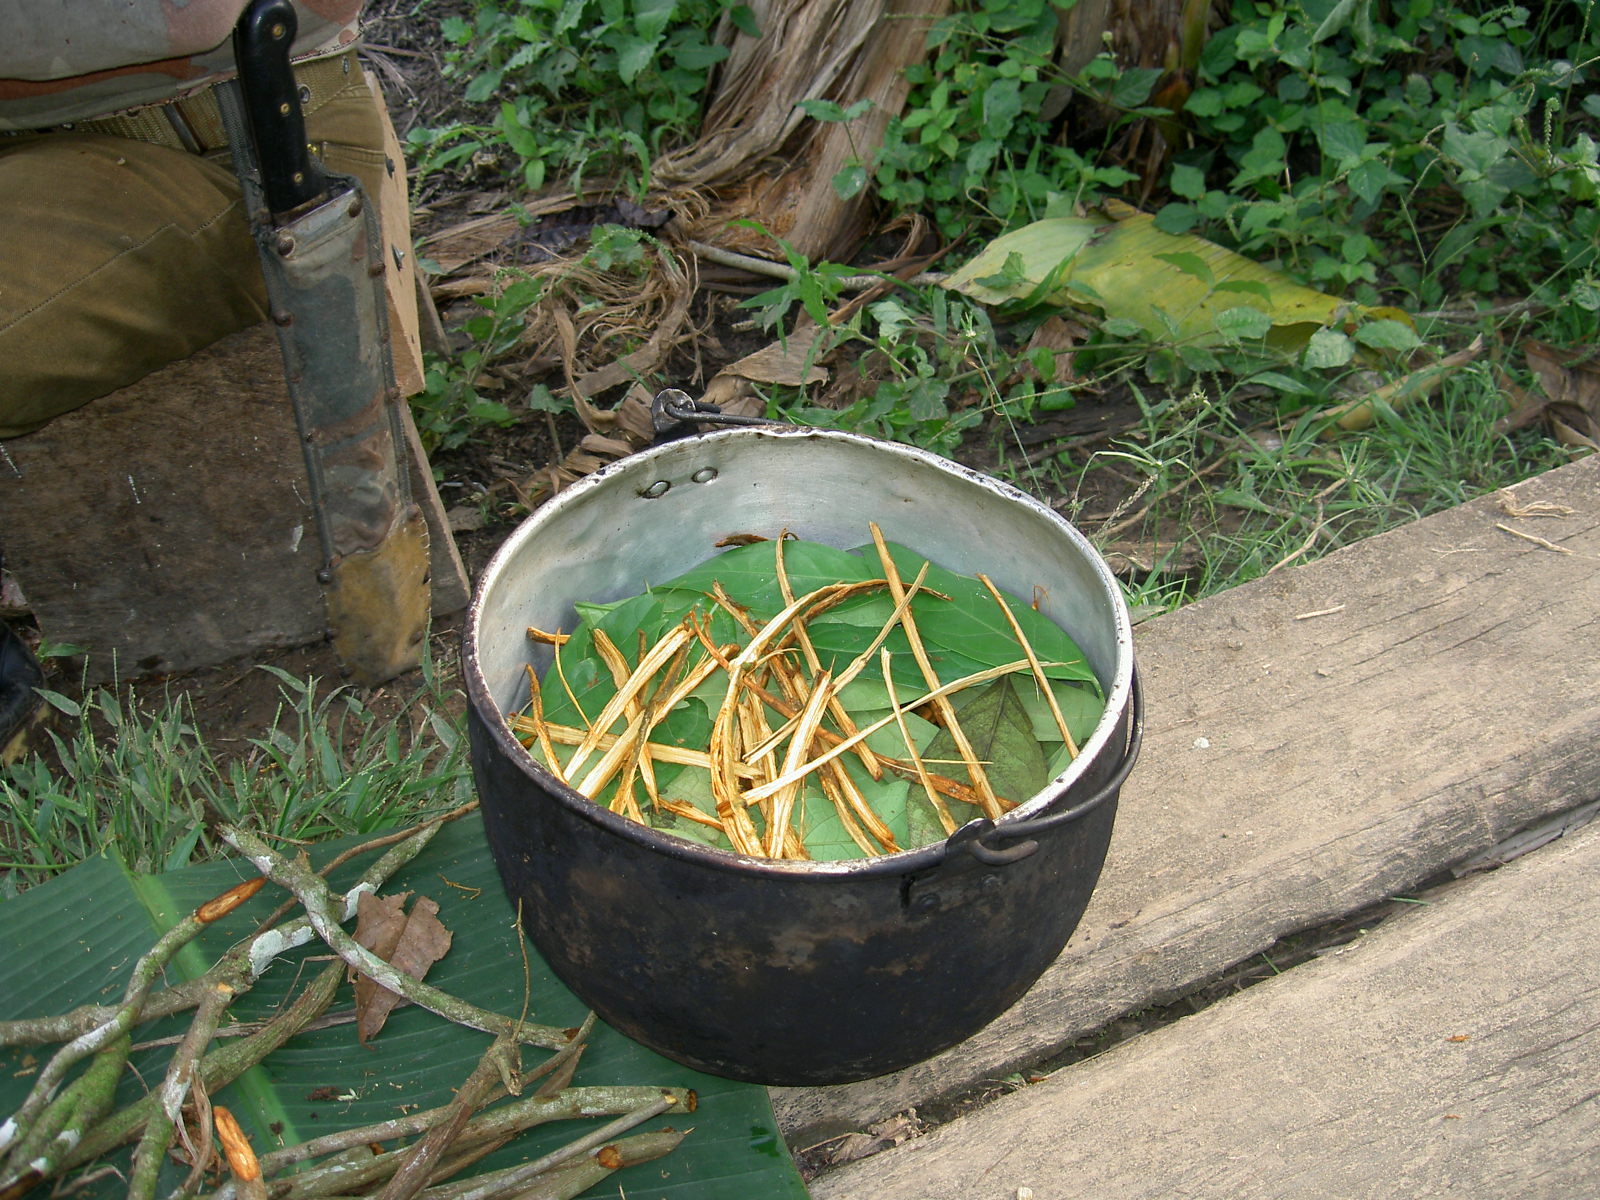 Ayahuasca Therapy Shown to Help People Suffering from Substance Abuse